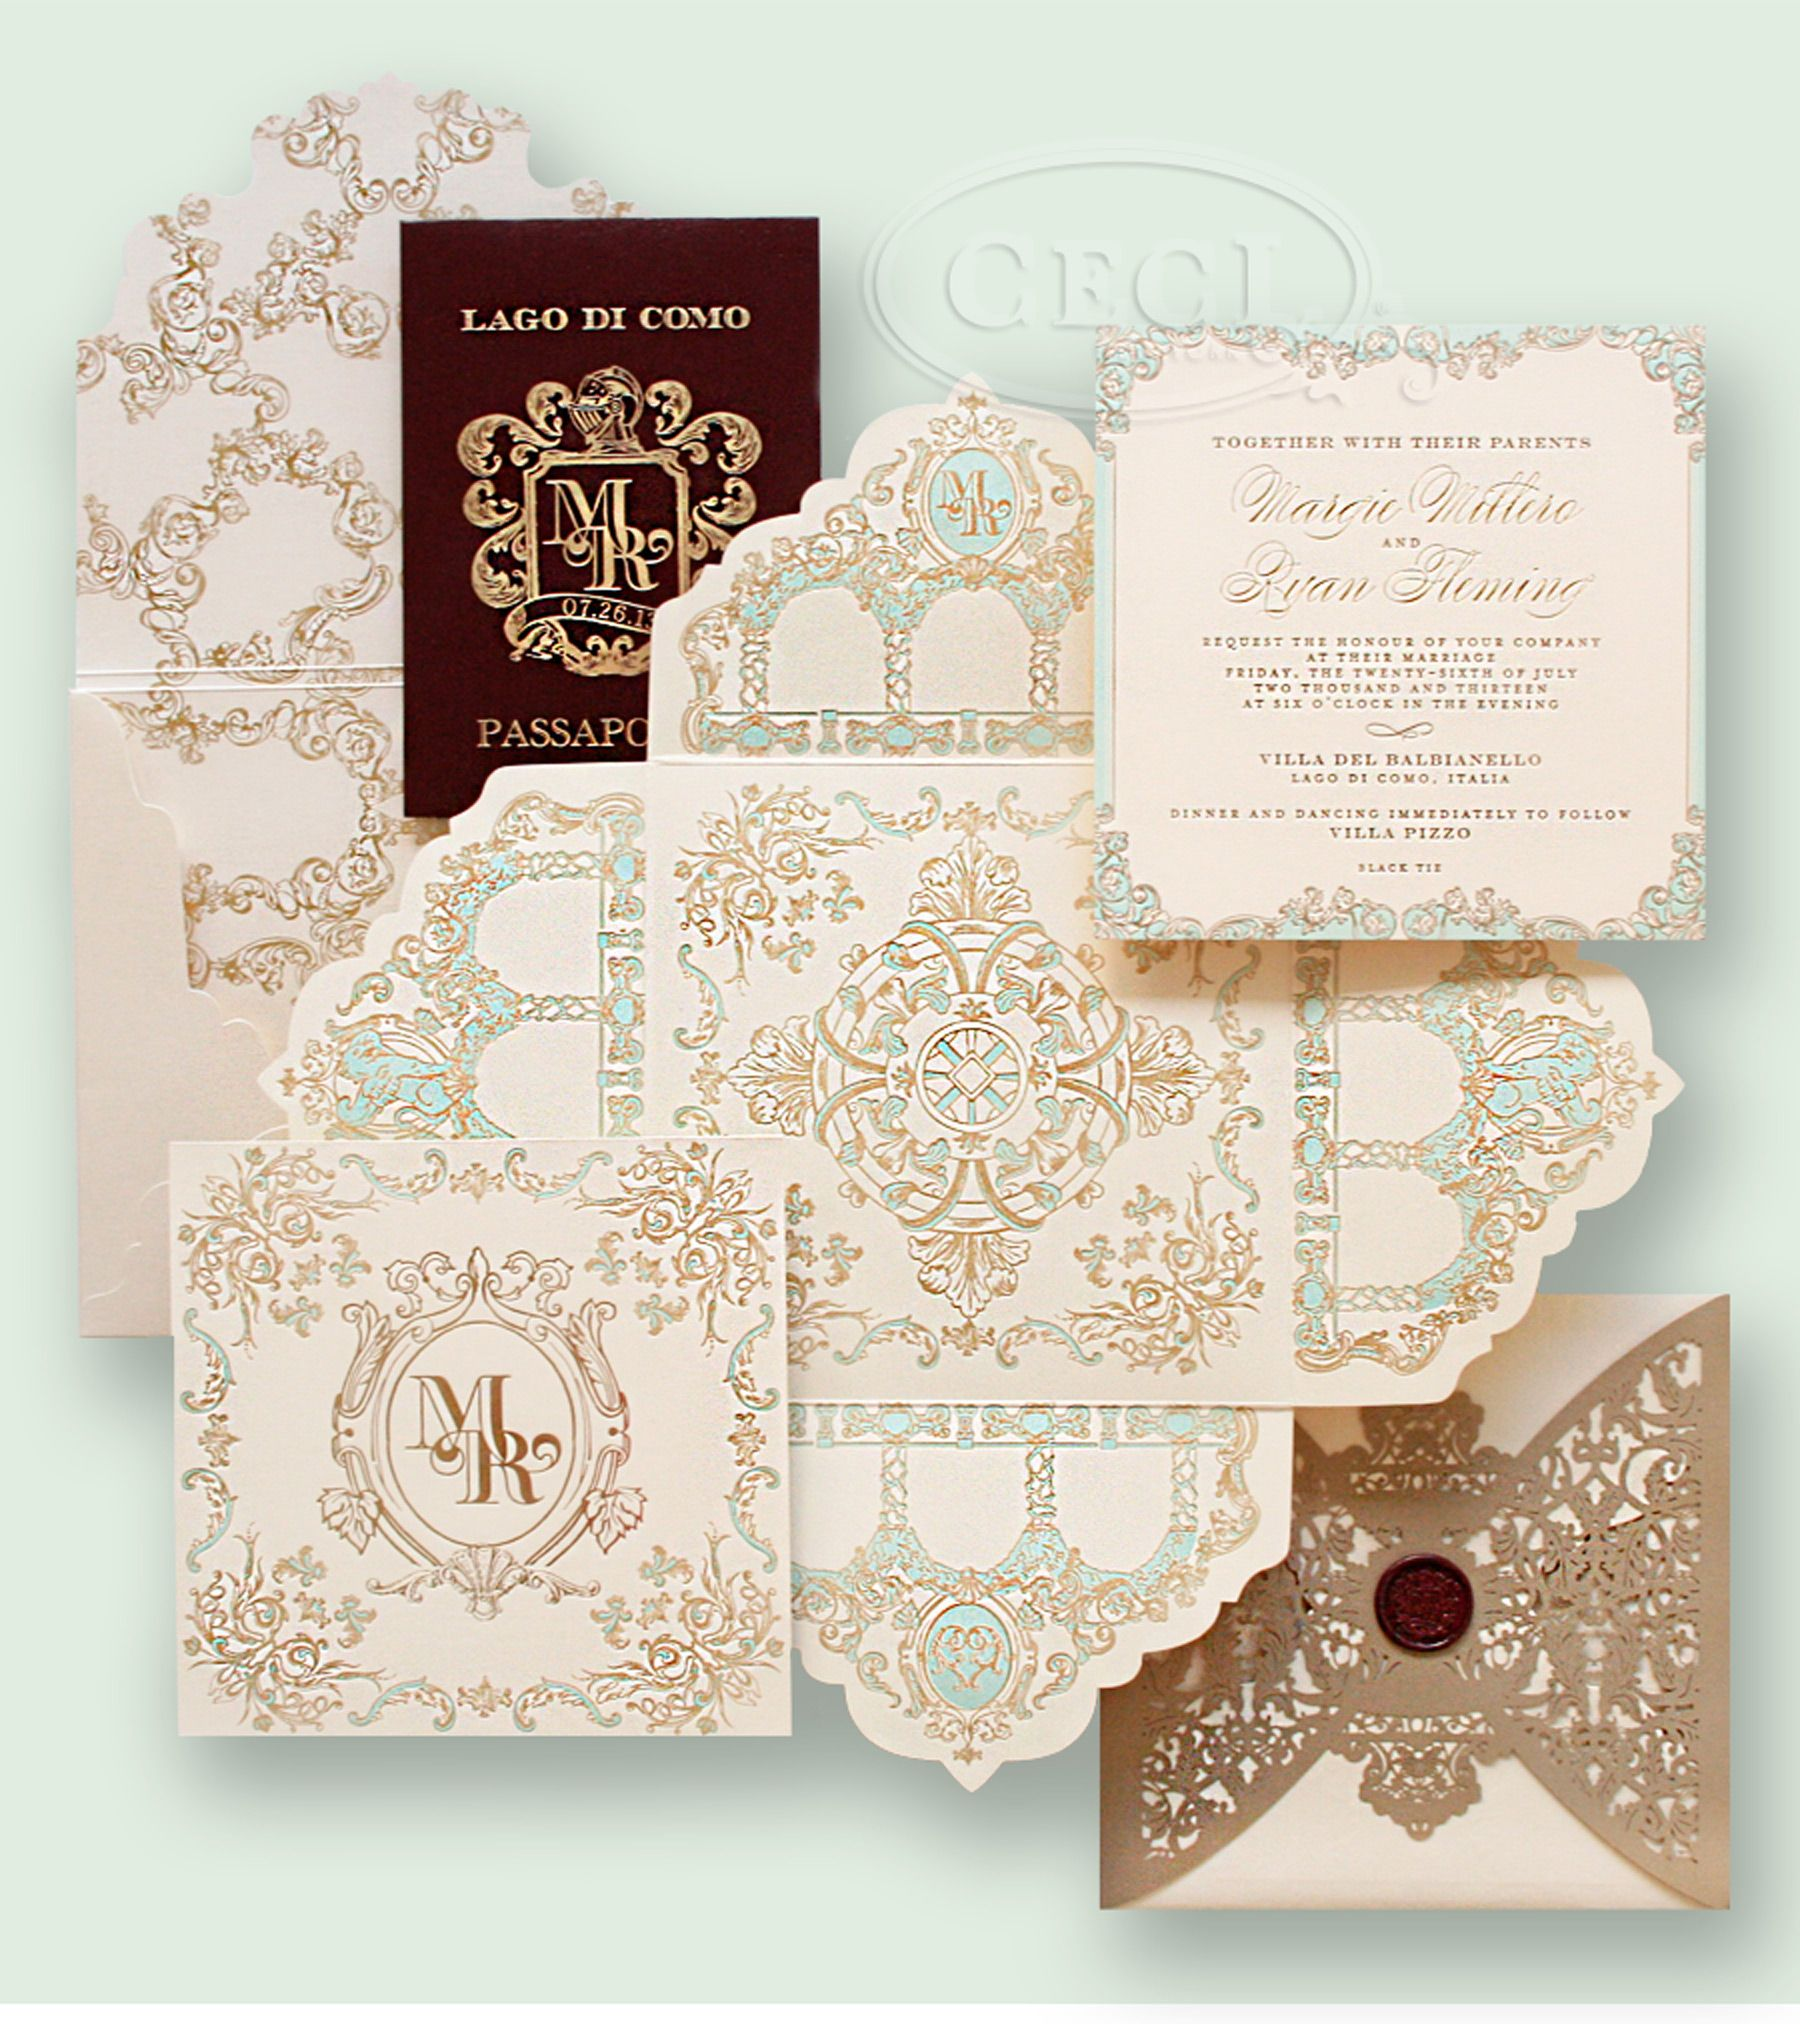 Luxury Wedding Invitations By Ceci New York Our Muse Luxurious Lake Como Italy